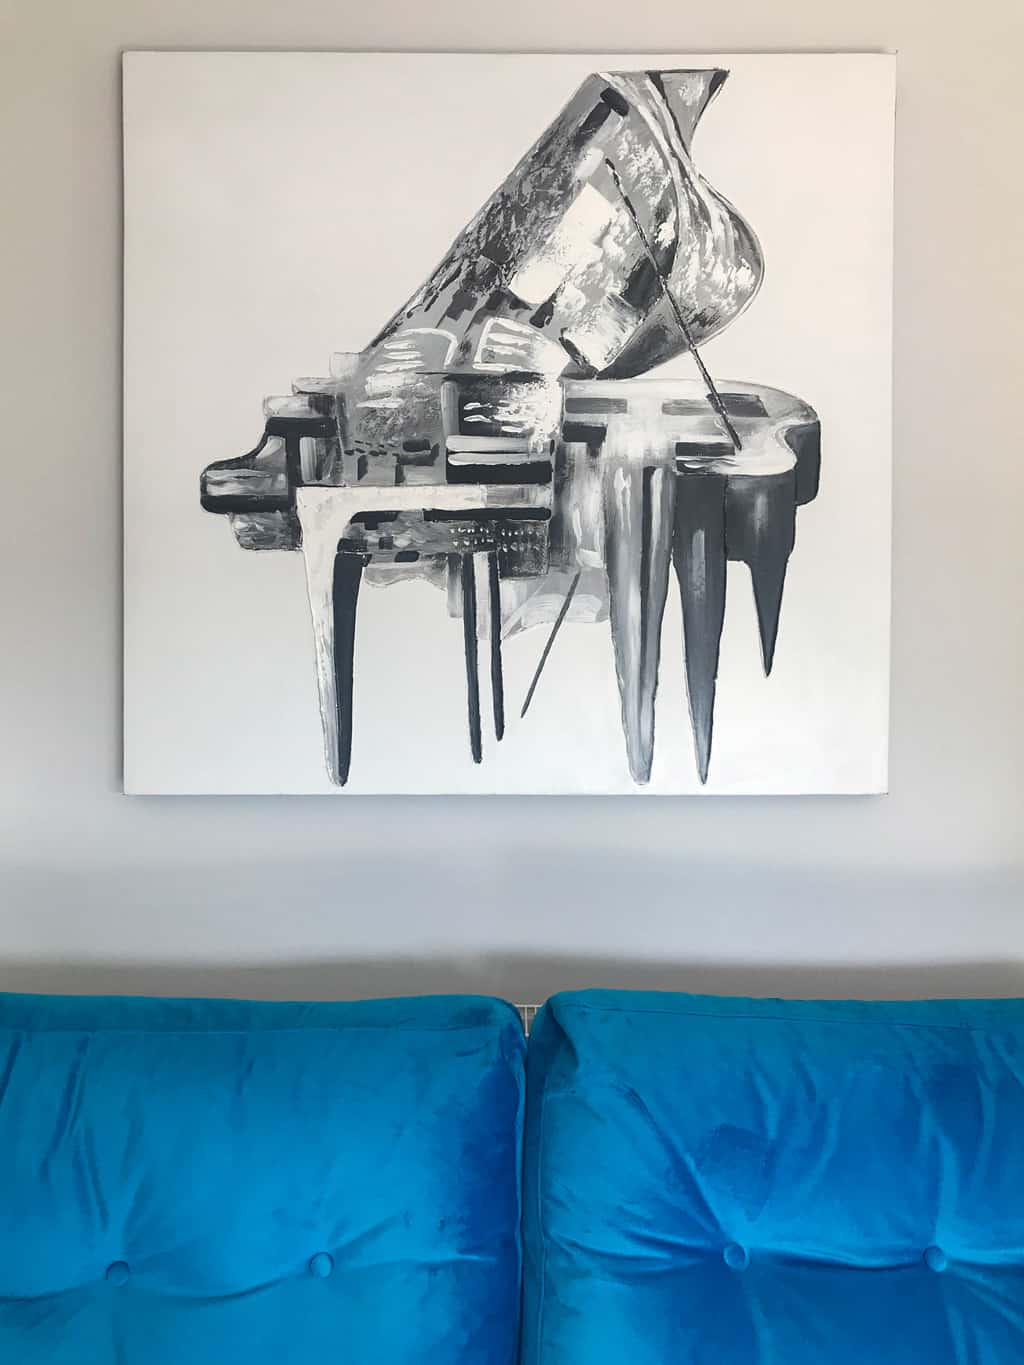 Monochrome Abstract Piano Wall Art Painting on Canvas